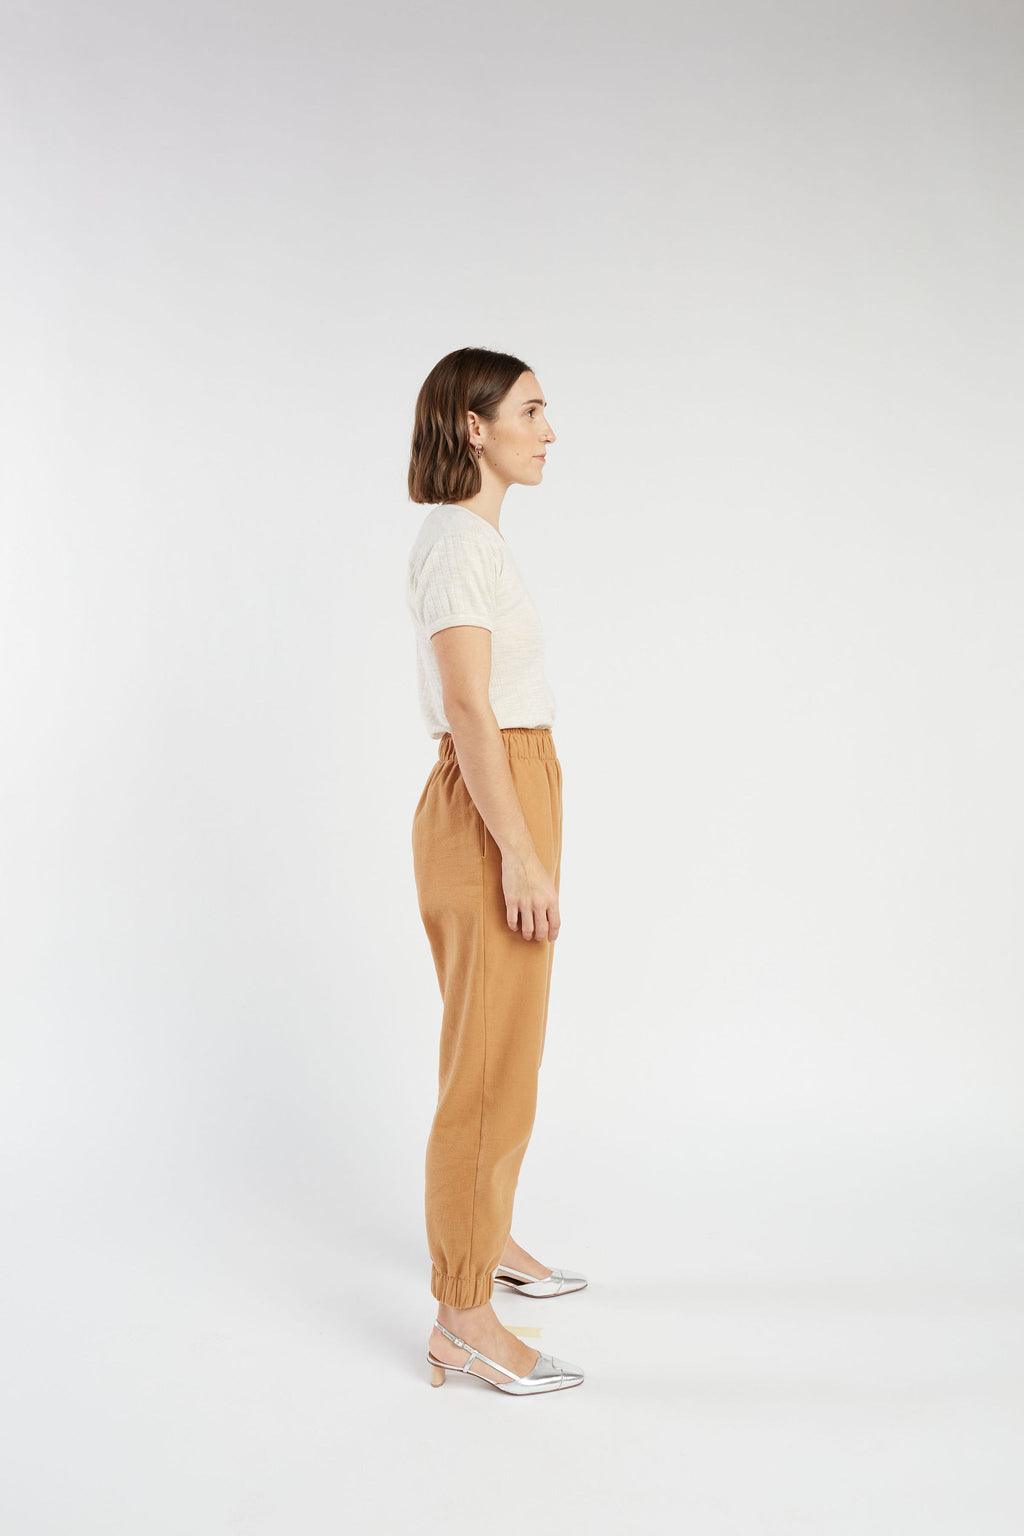 Emery pant in Camel